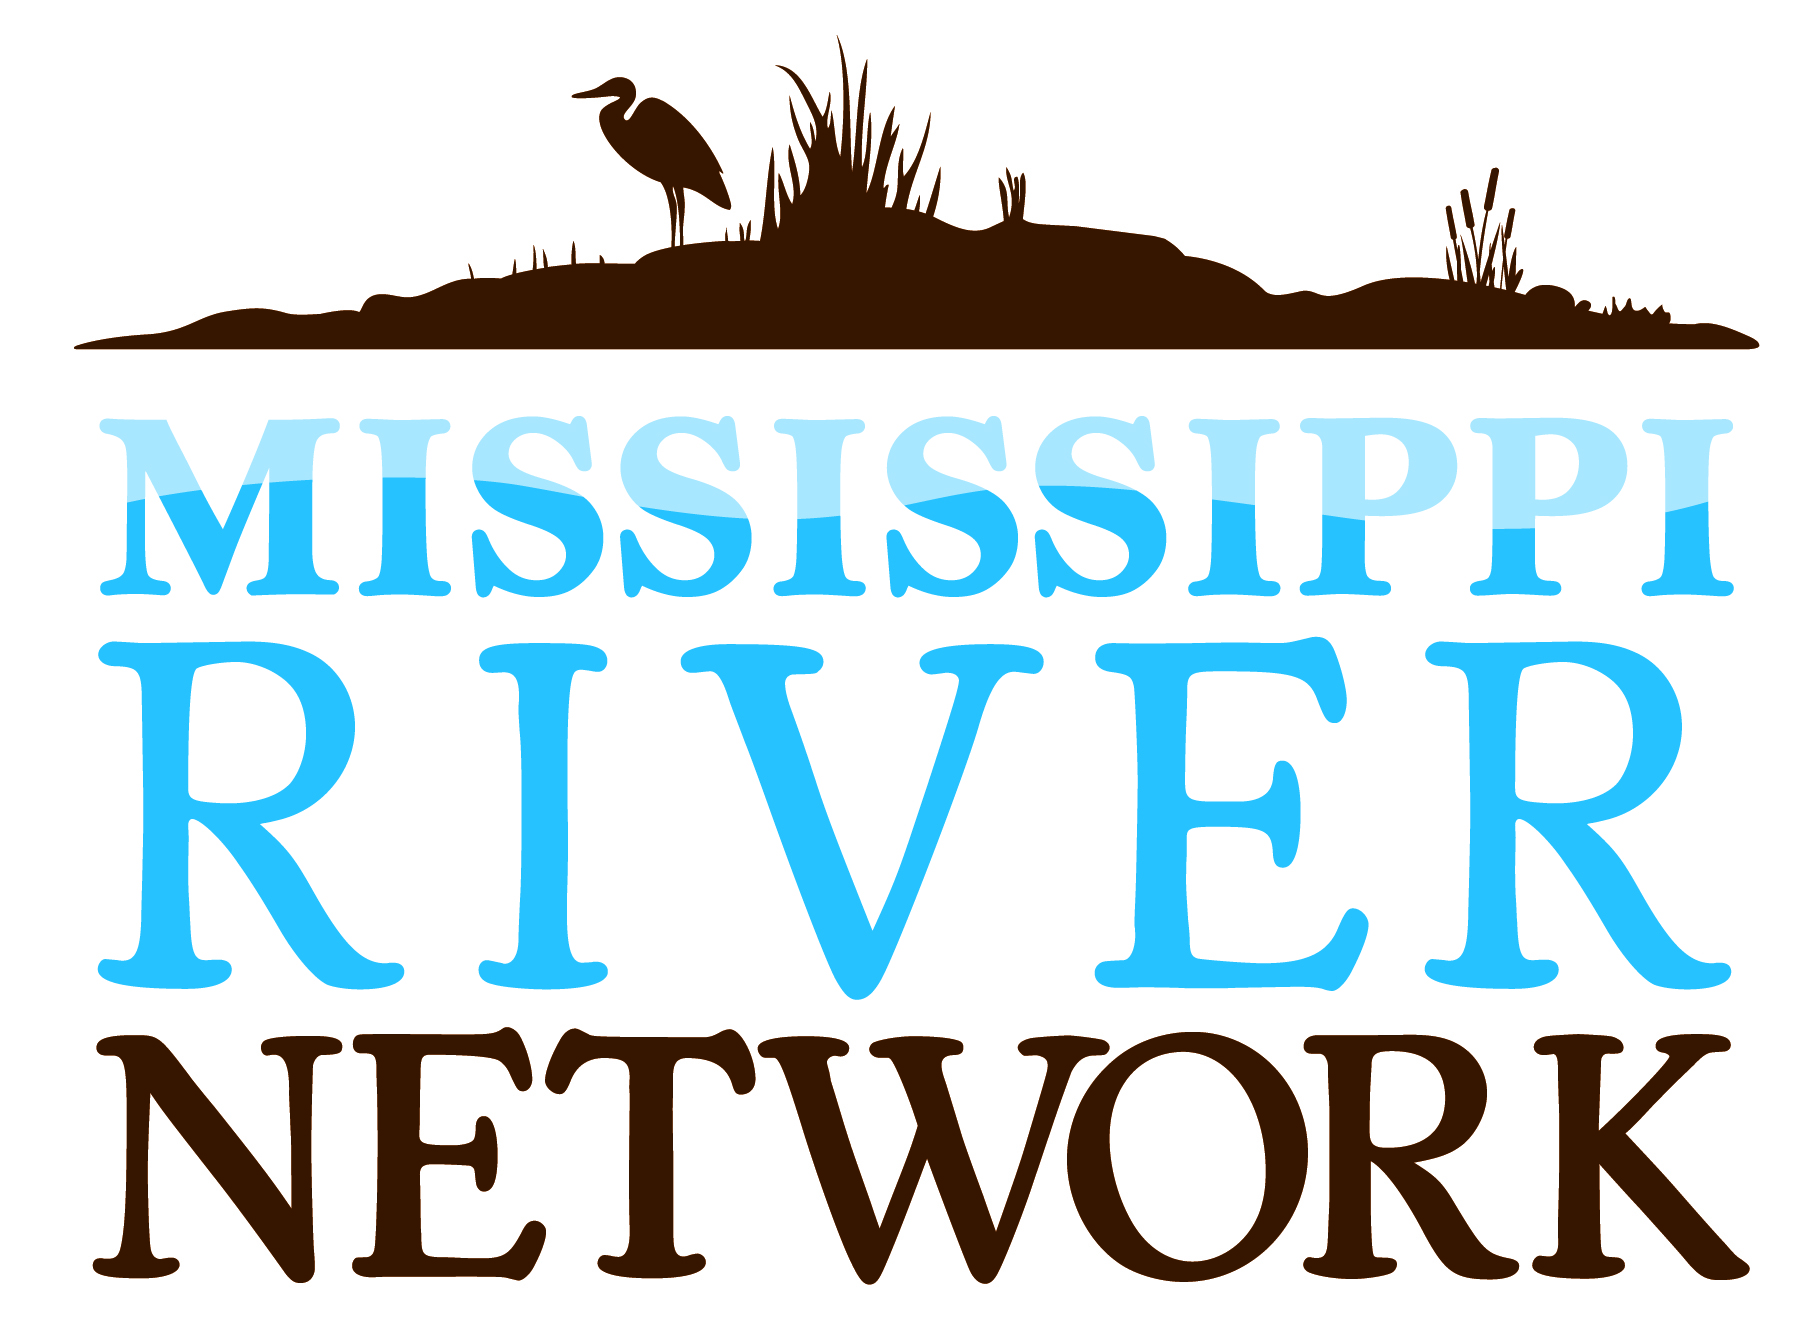 Mississippi river water clipart download List of MRN organizations | 1 Mississippi download